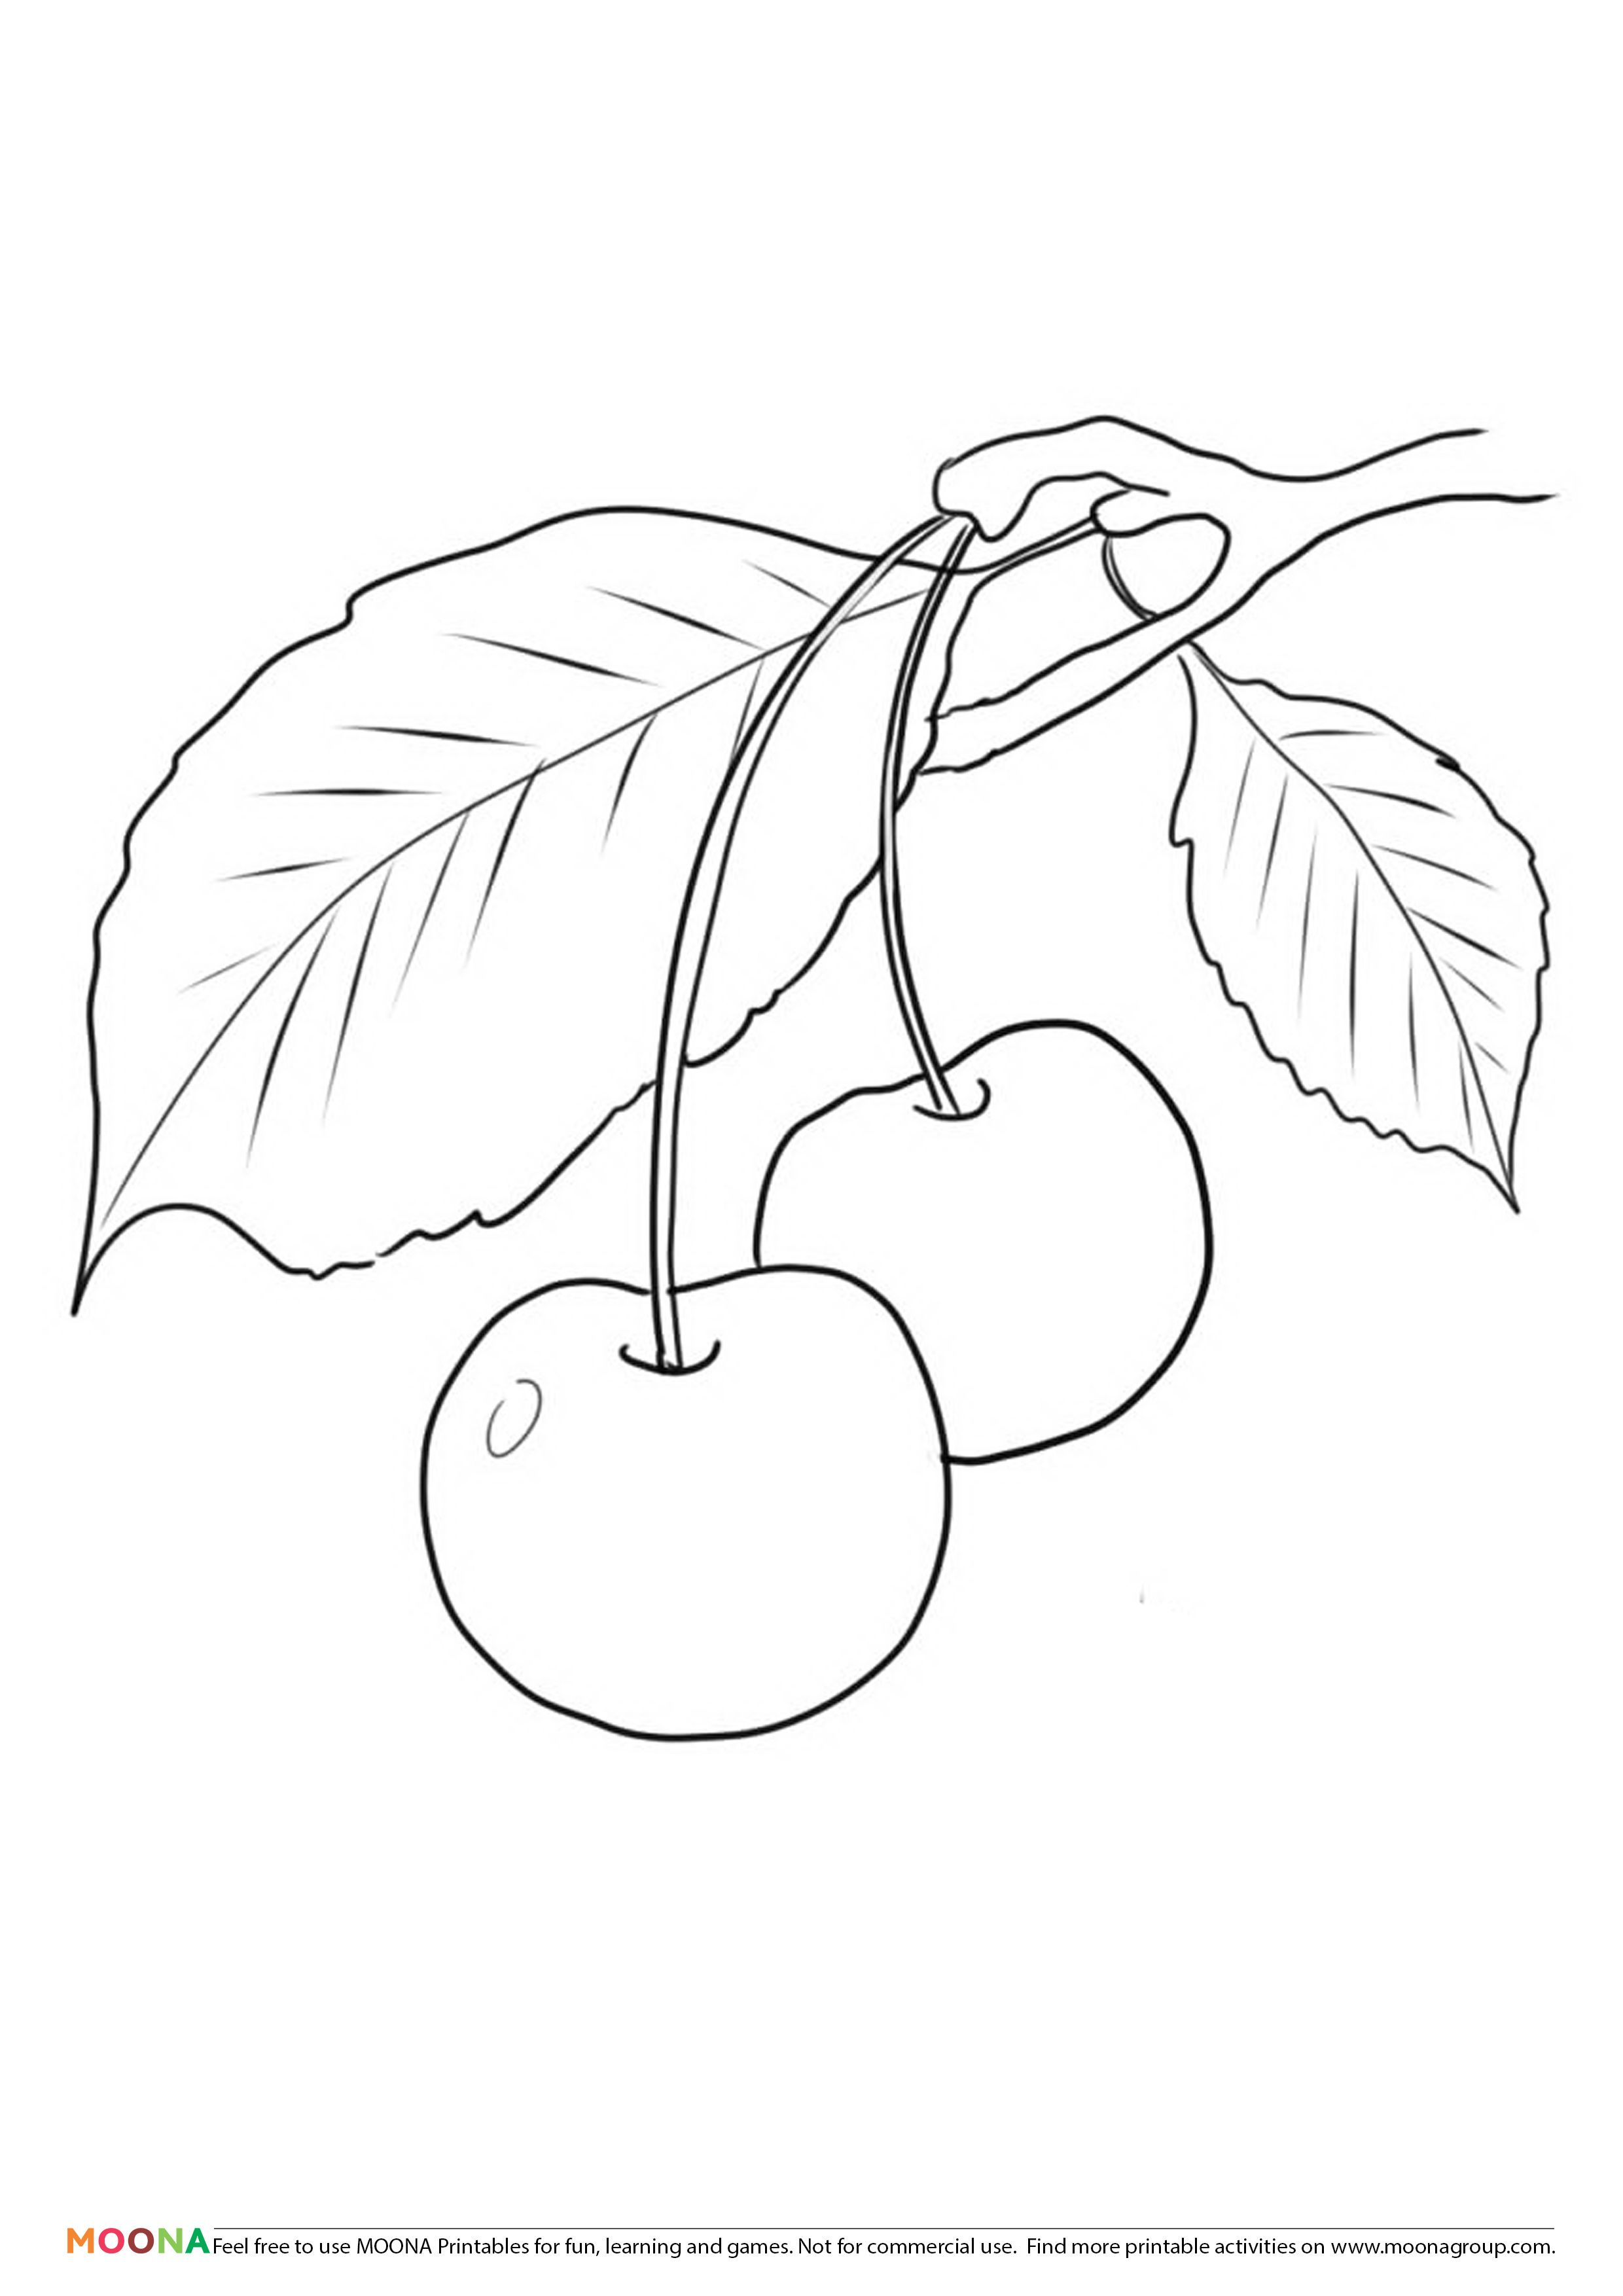 Free Printable Coloring Pages Moona Fruits And Berries Tree